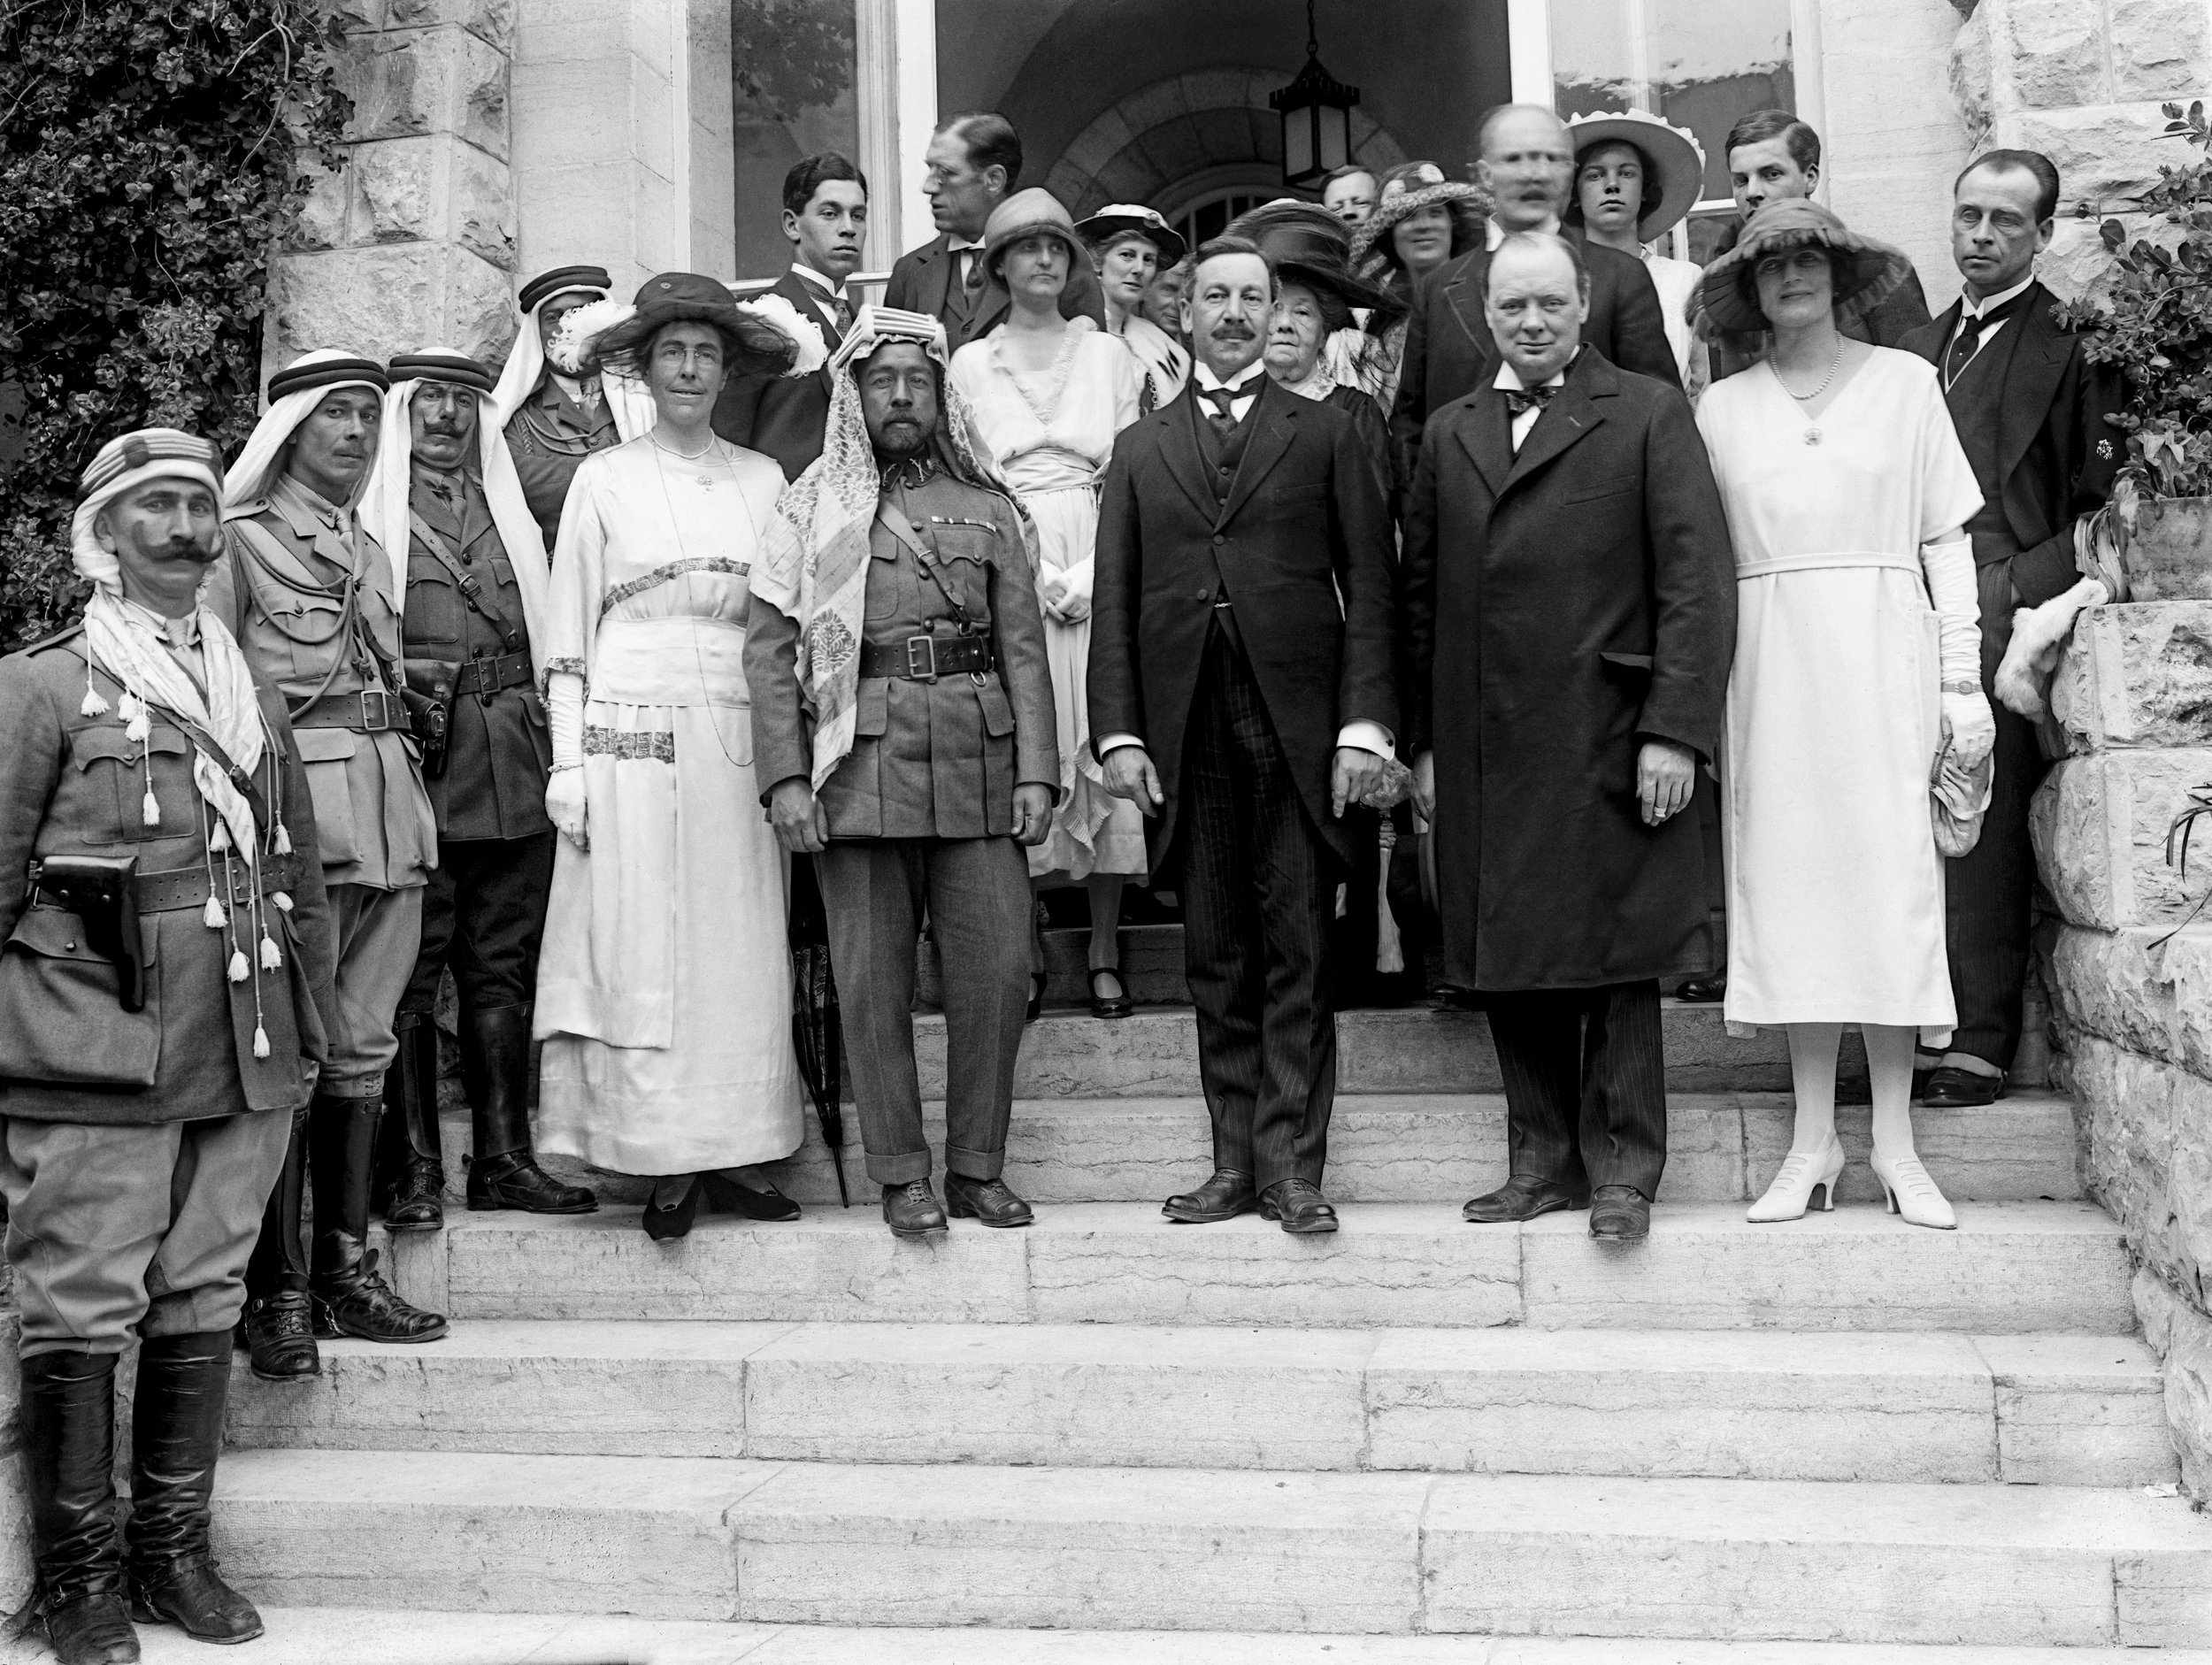 Winston Churchill at Government House reception on March 28, 1921, in Jerusalem with Emir Abdullah of Transjordan. (Public domain)